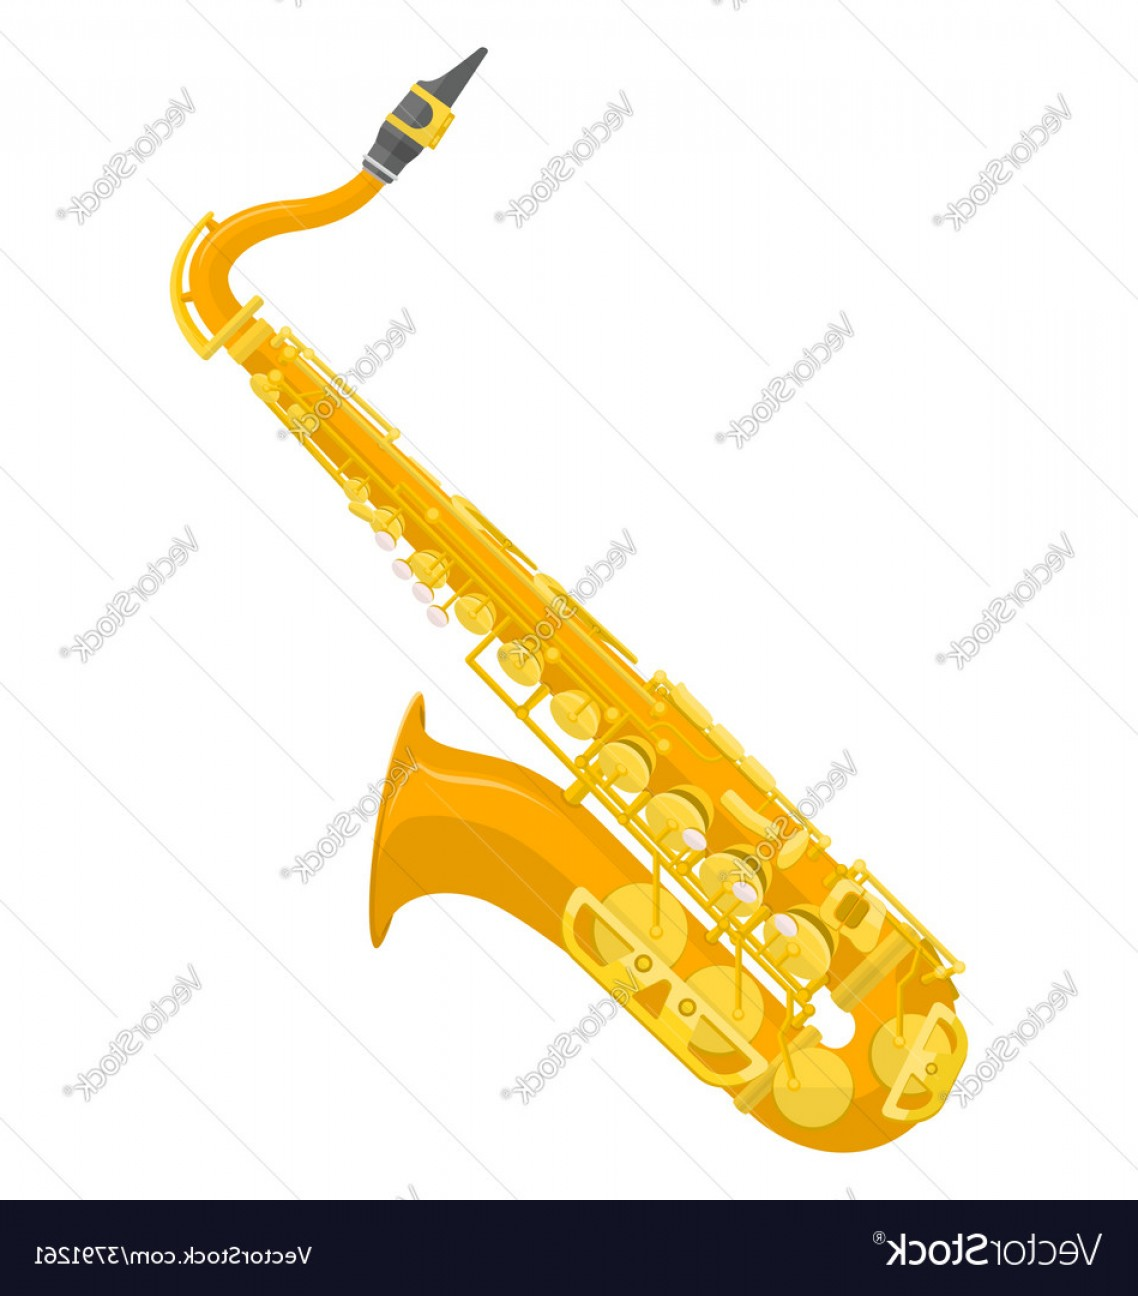 Alto Saxophone Vector Graphics: Flat Design Colored Copper Brass Alto Saxophone Vector